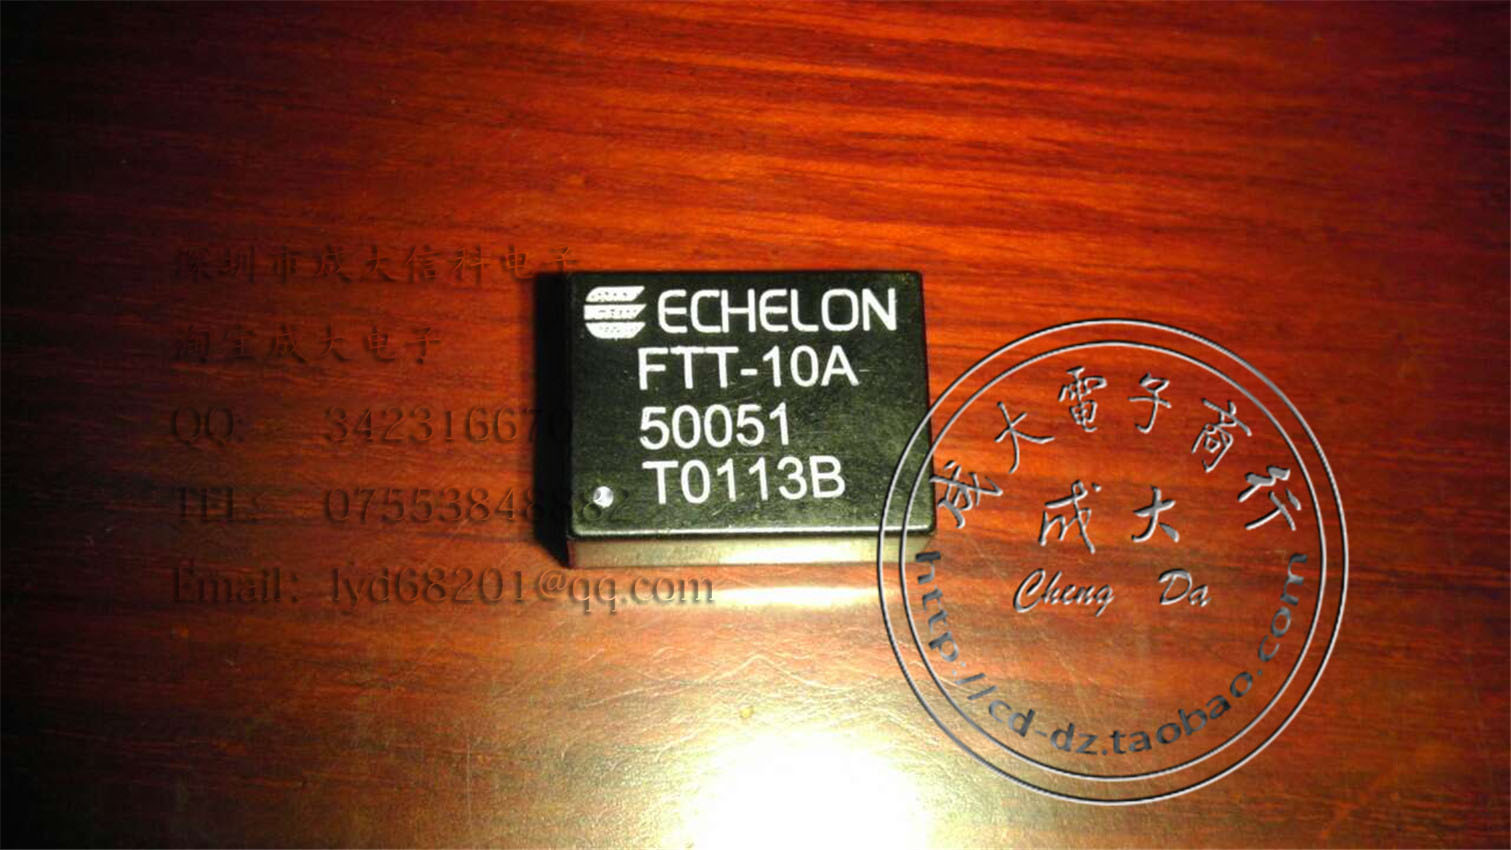 FTT-10A 50051R EELON magnetic shielding module imported original MODEL DIP-9 . Free Shipping 2pcs ta3020 dip48 dip new and original free shipping page 2